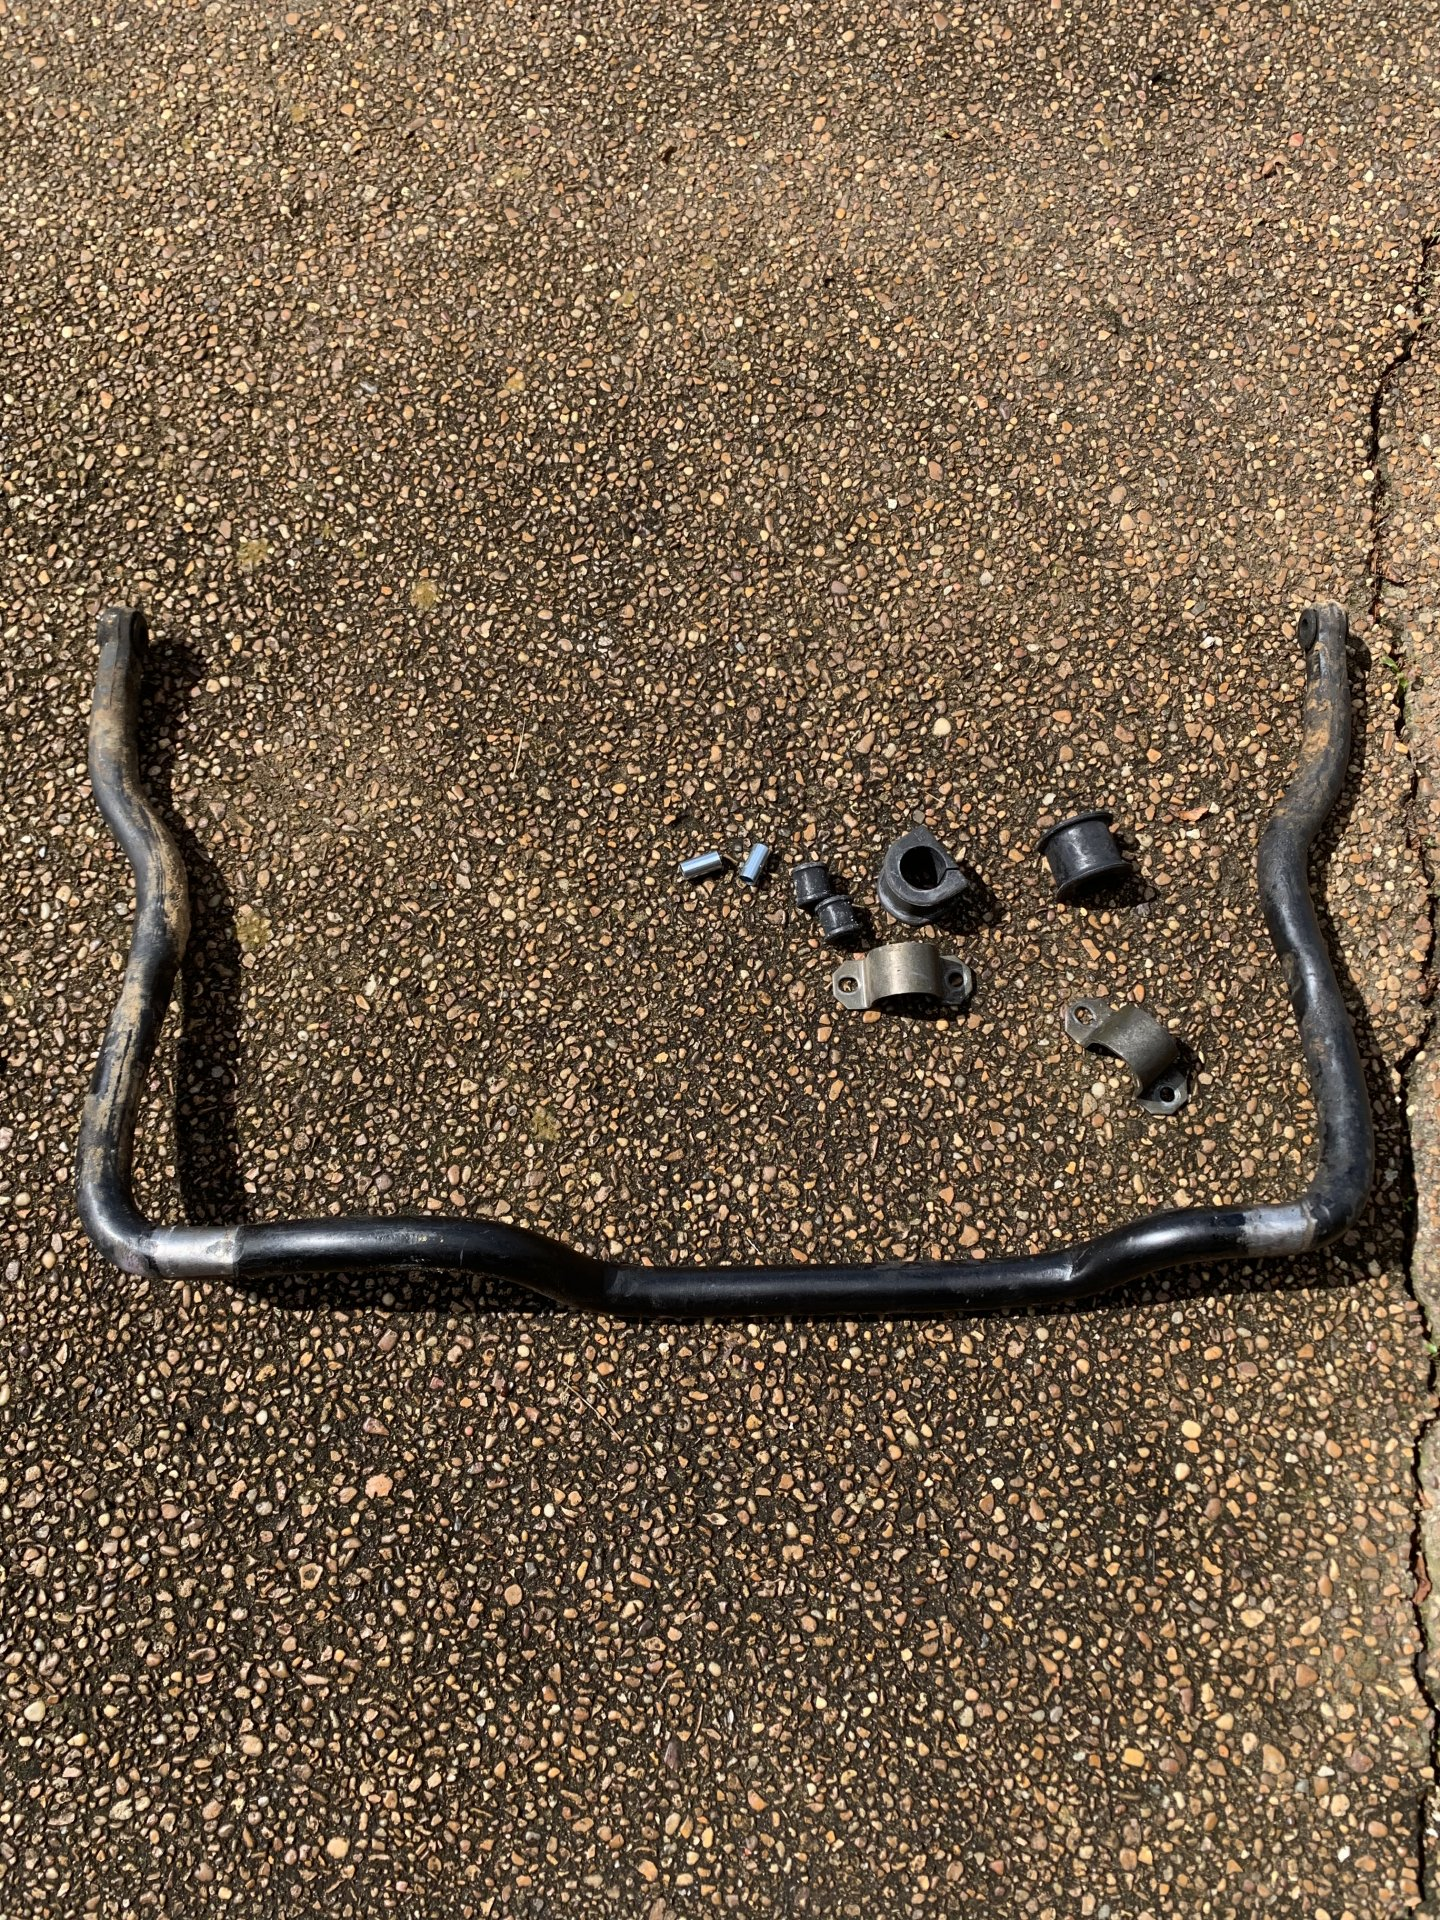 Anti Sway Bar.jpg